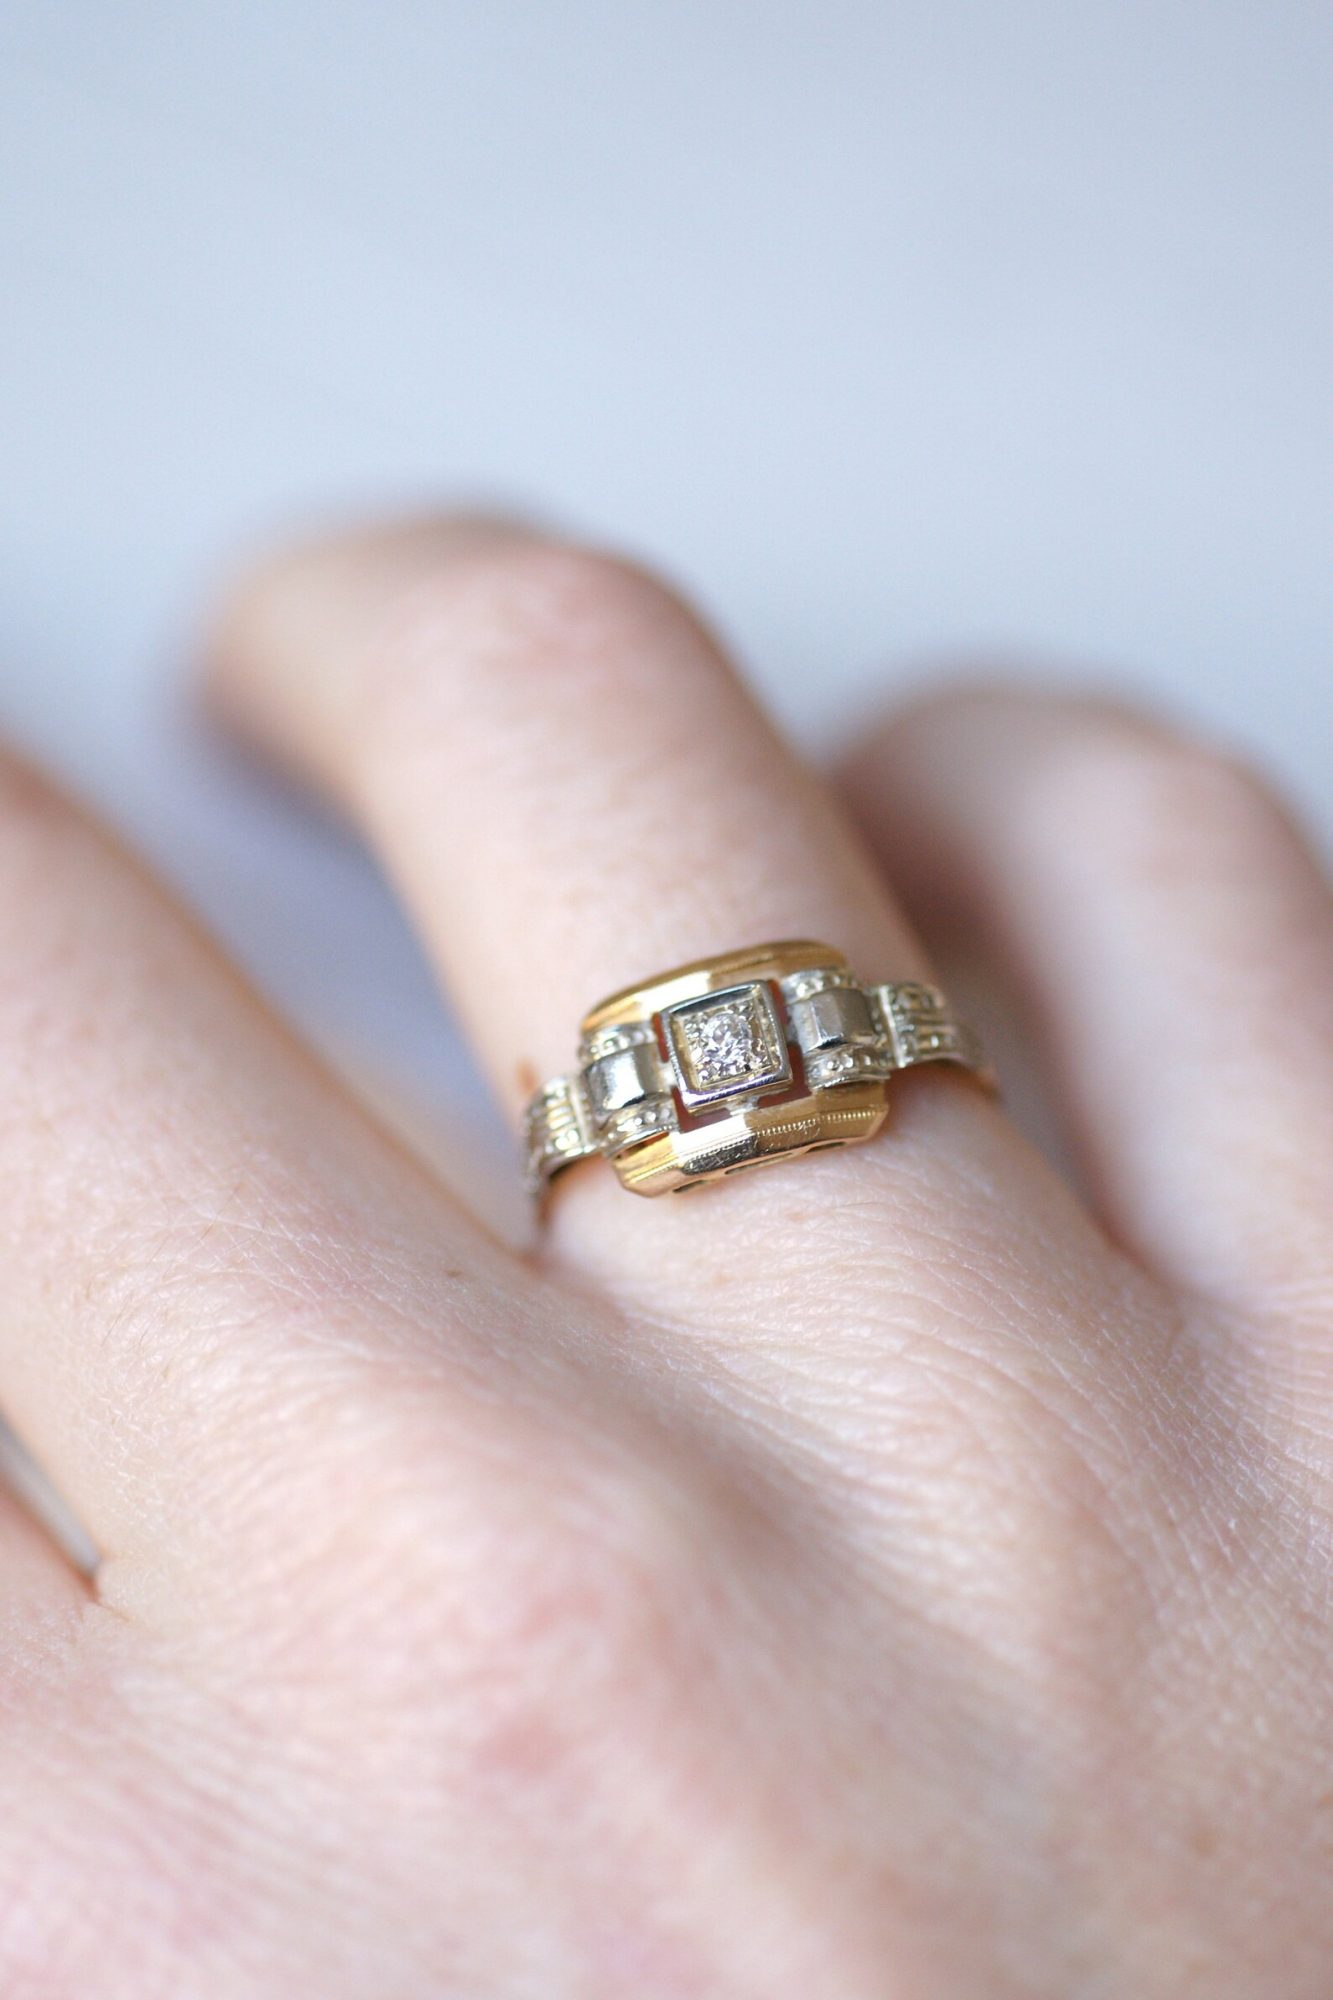 1930s White and Yellow Gold Vintage Ring